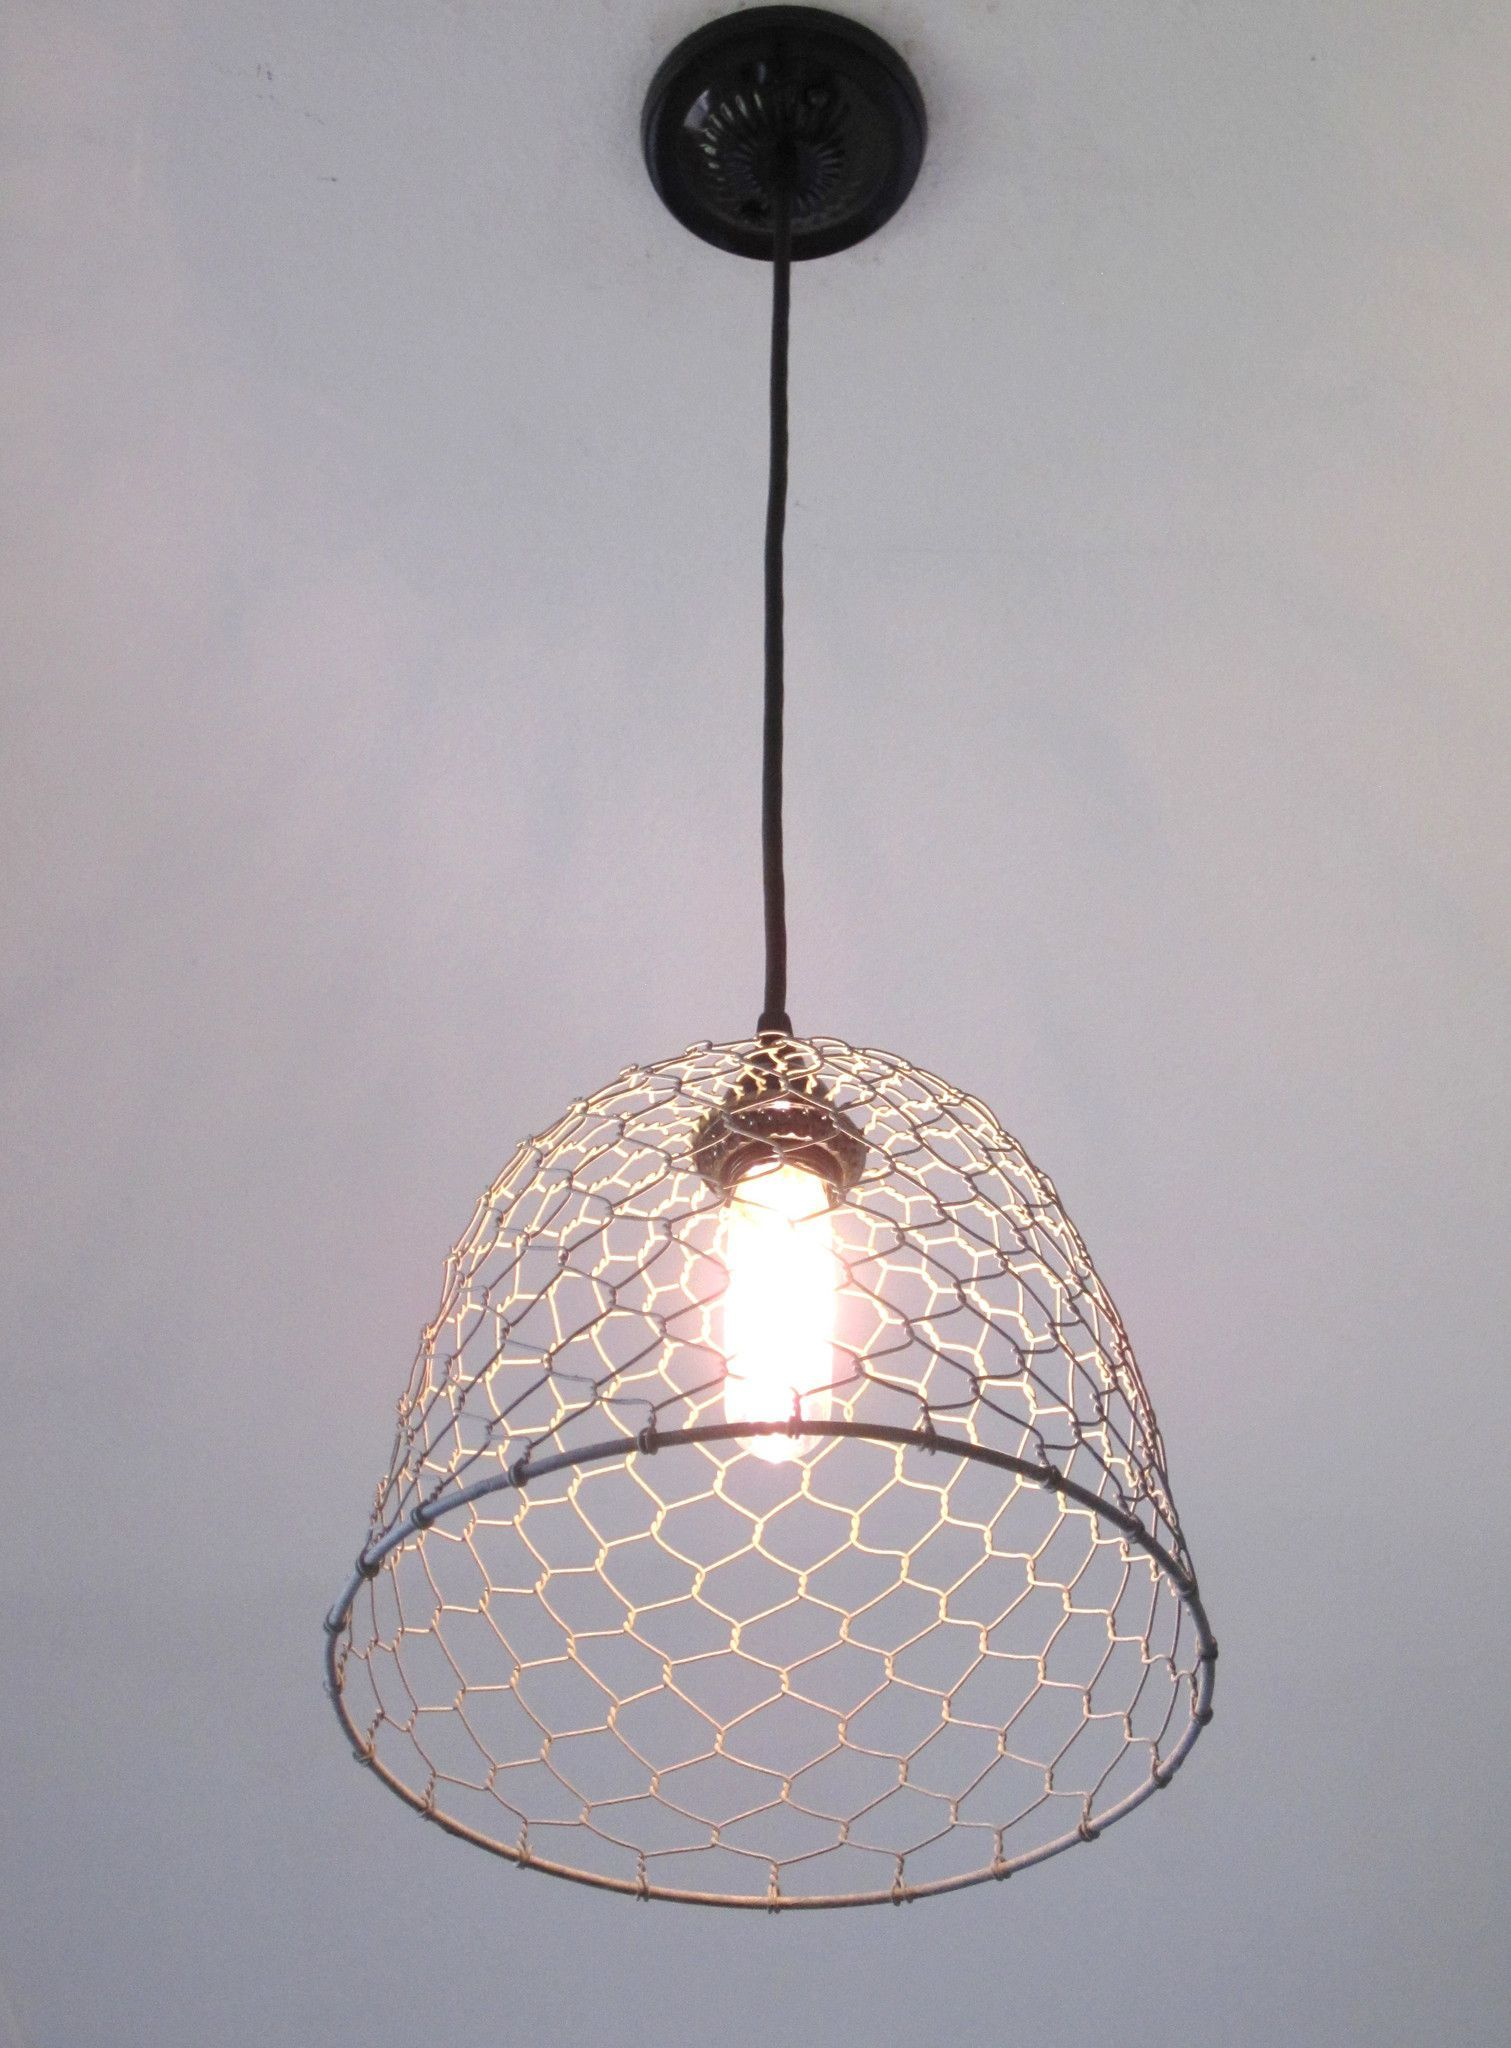 Galvanized Chicken Wire Dome Pendant Light | Chicken wire, Coops and ...